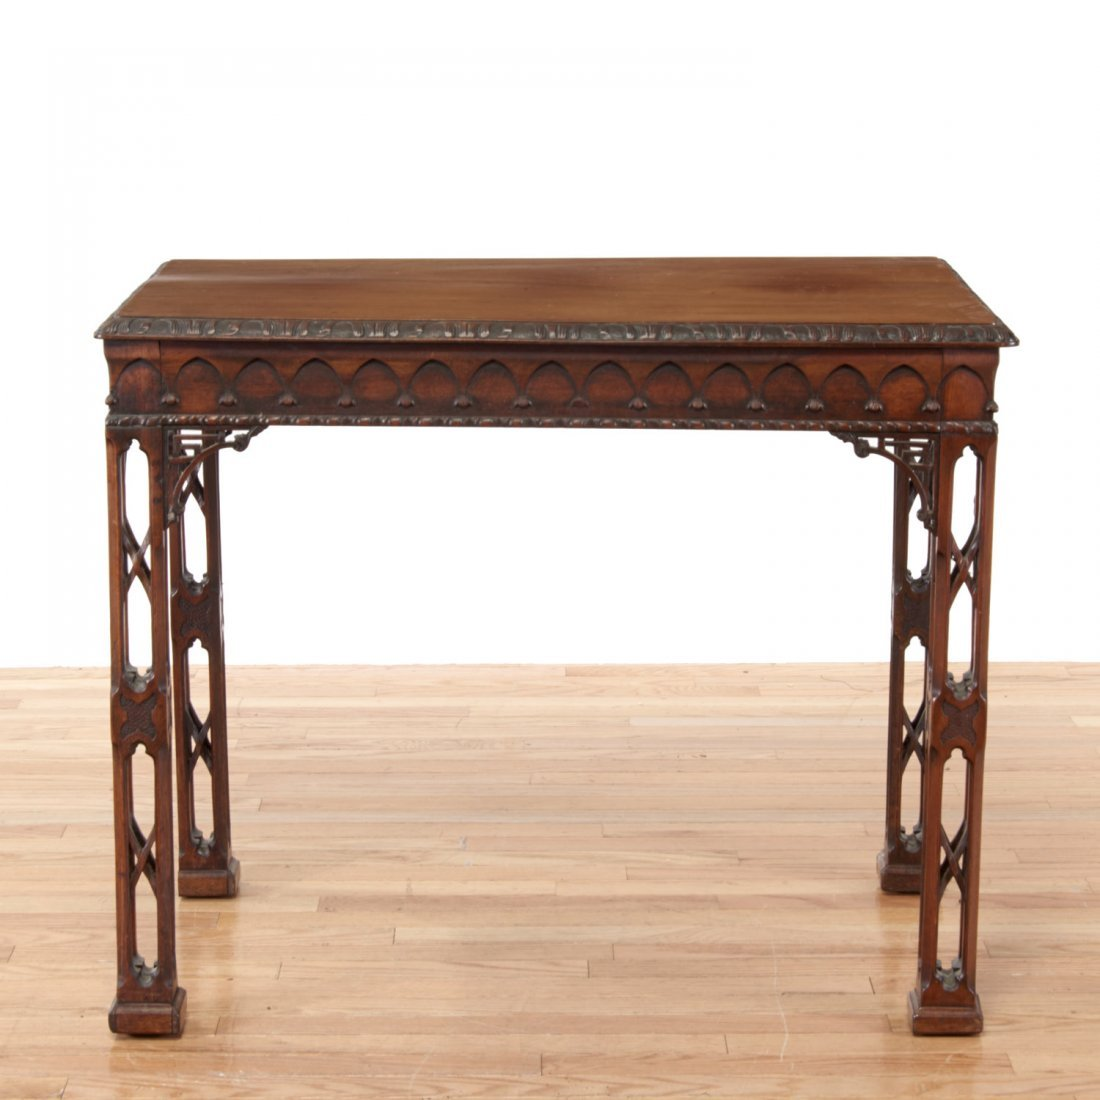 Gothic Revival carved mahogany side table - 2